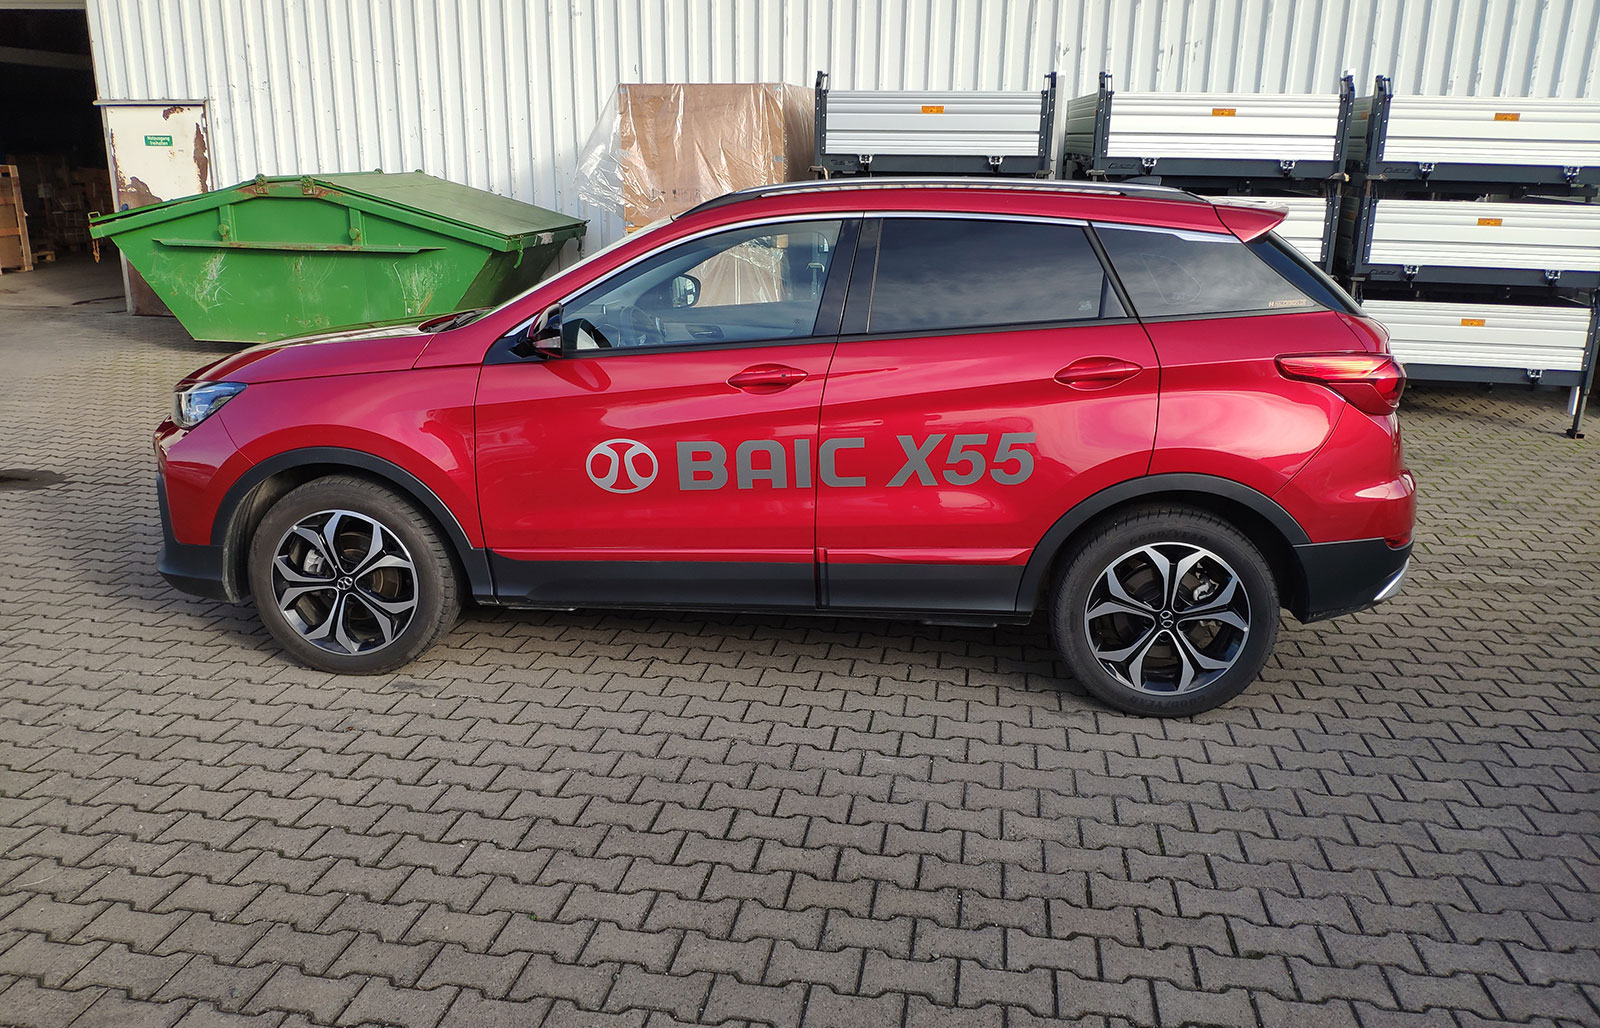 BAIC X55 AT 1.5T în test la CPA